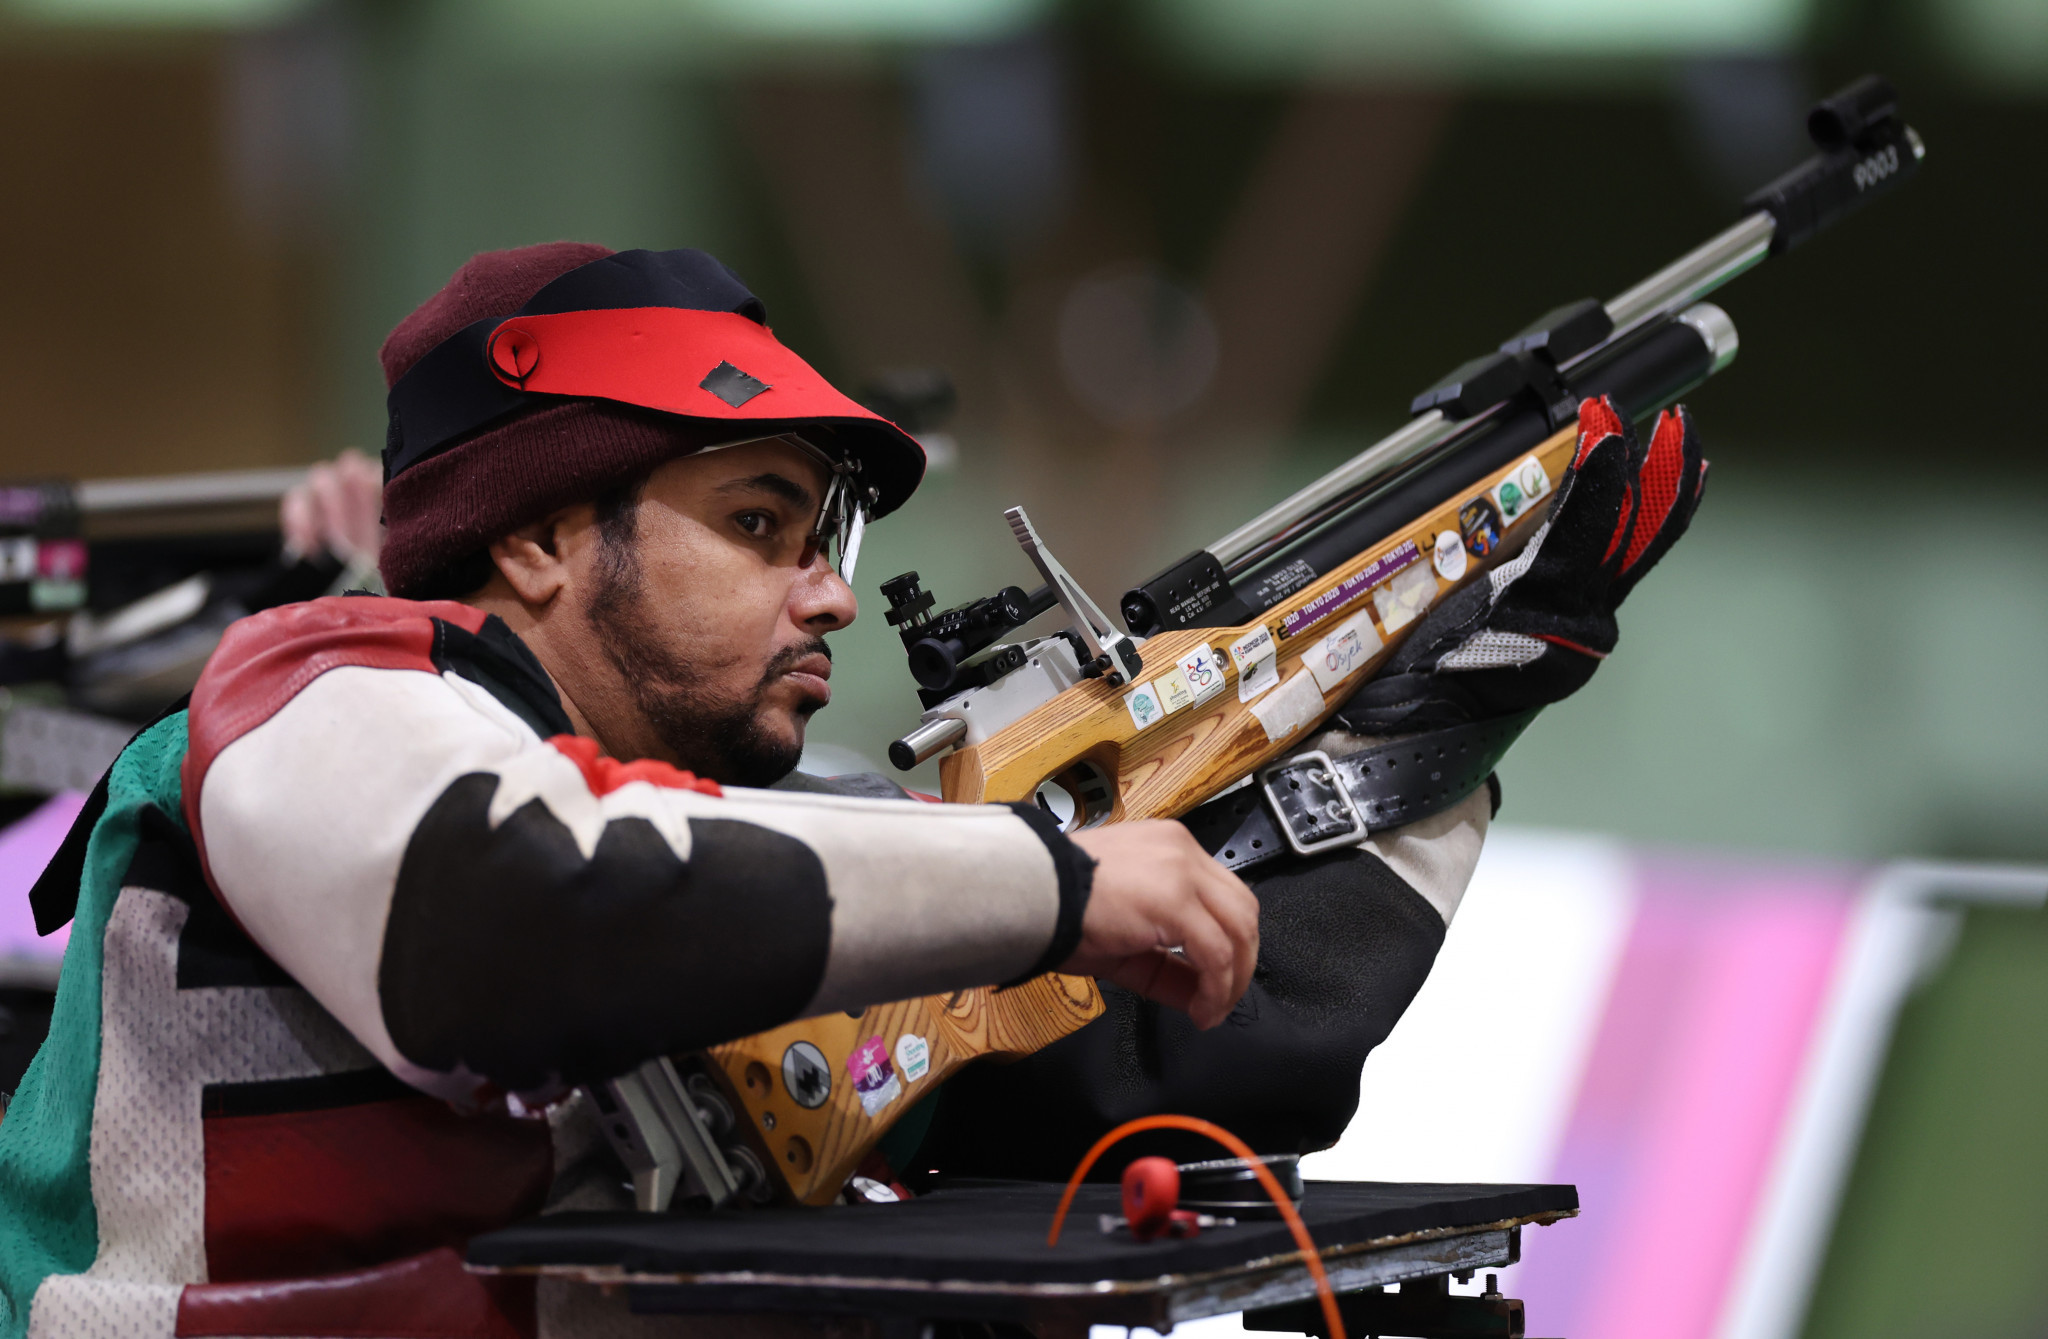 Alaryani wins UAE's first Tokyo 2020 Paralympics gold with 50m rifle win